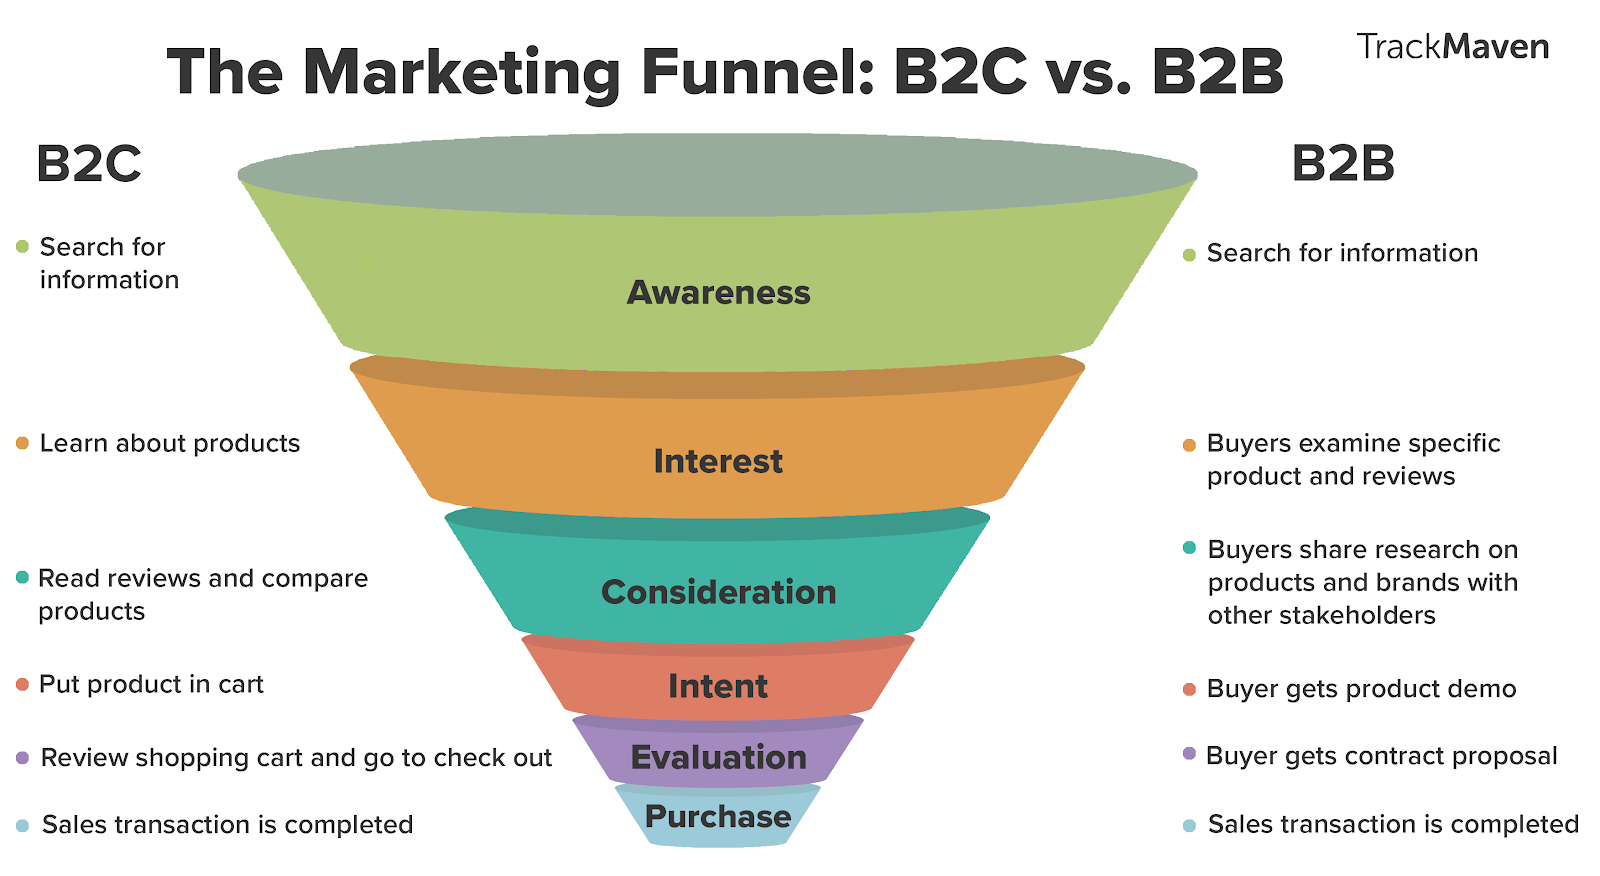 Marketing funnel for B2B versus B2C.